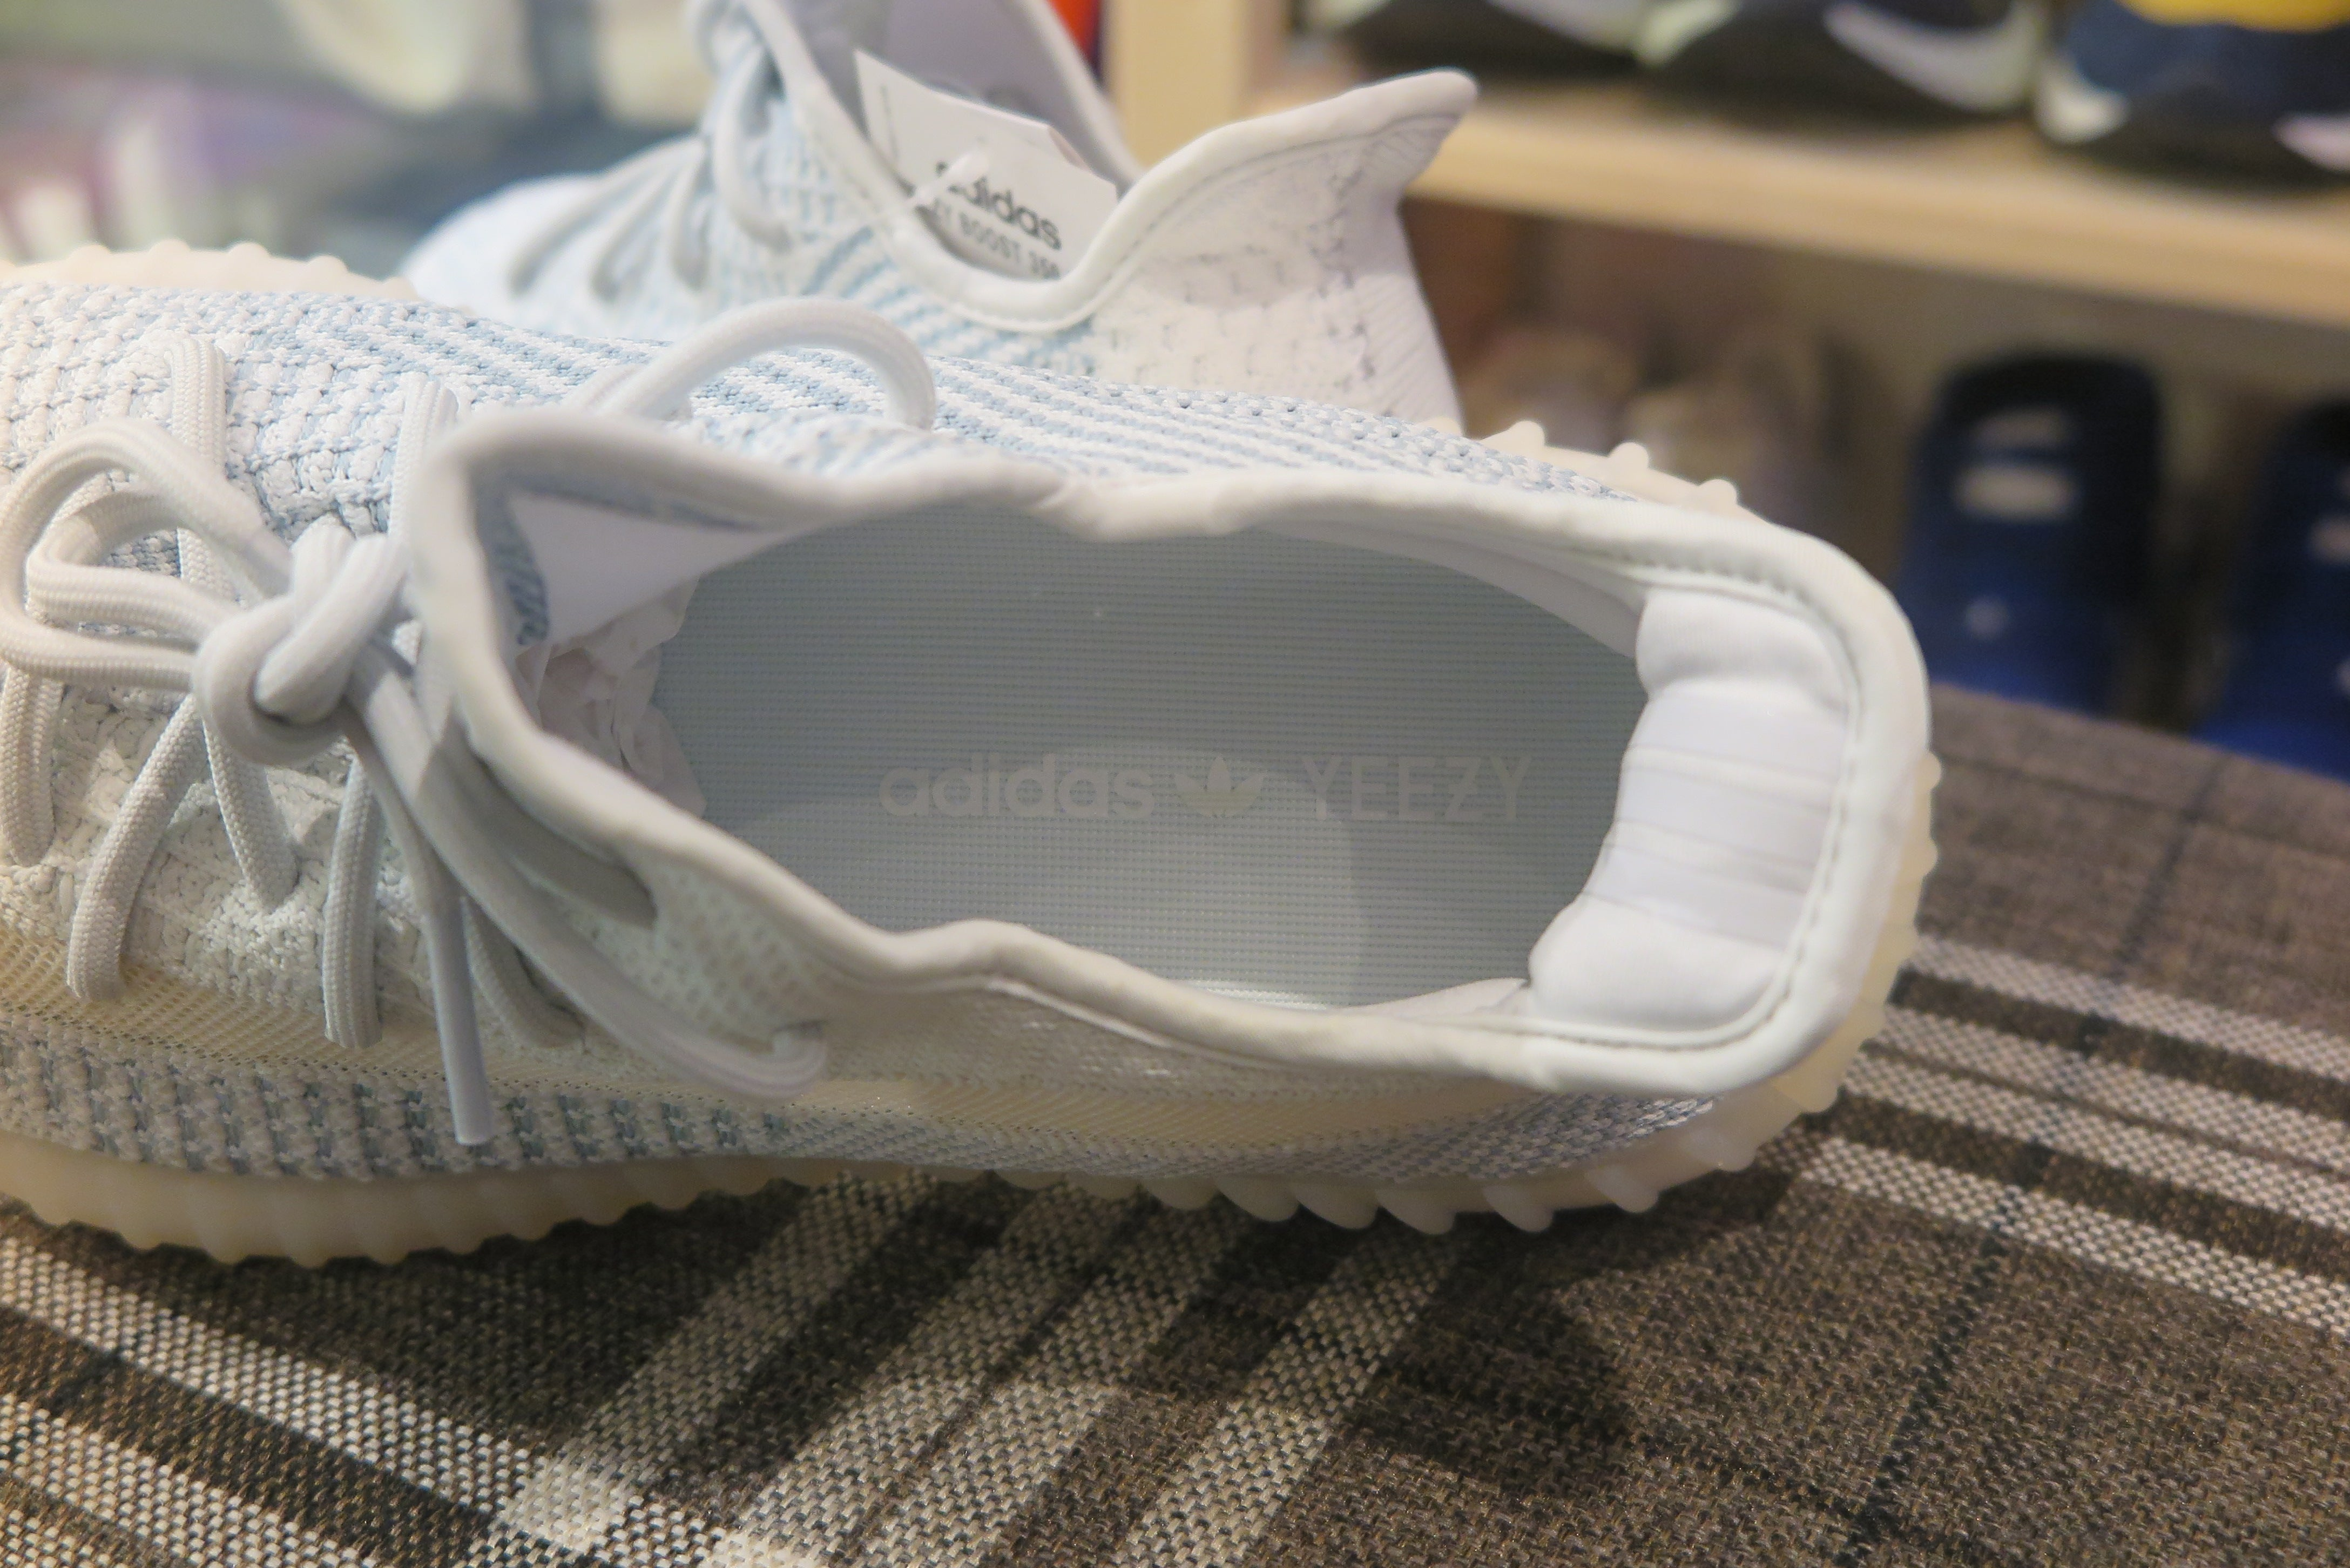 adidas Yeezy Boost 350 V2 NF - Cloud White #FW3043-Sneakers-Navy Selected Shop